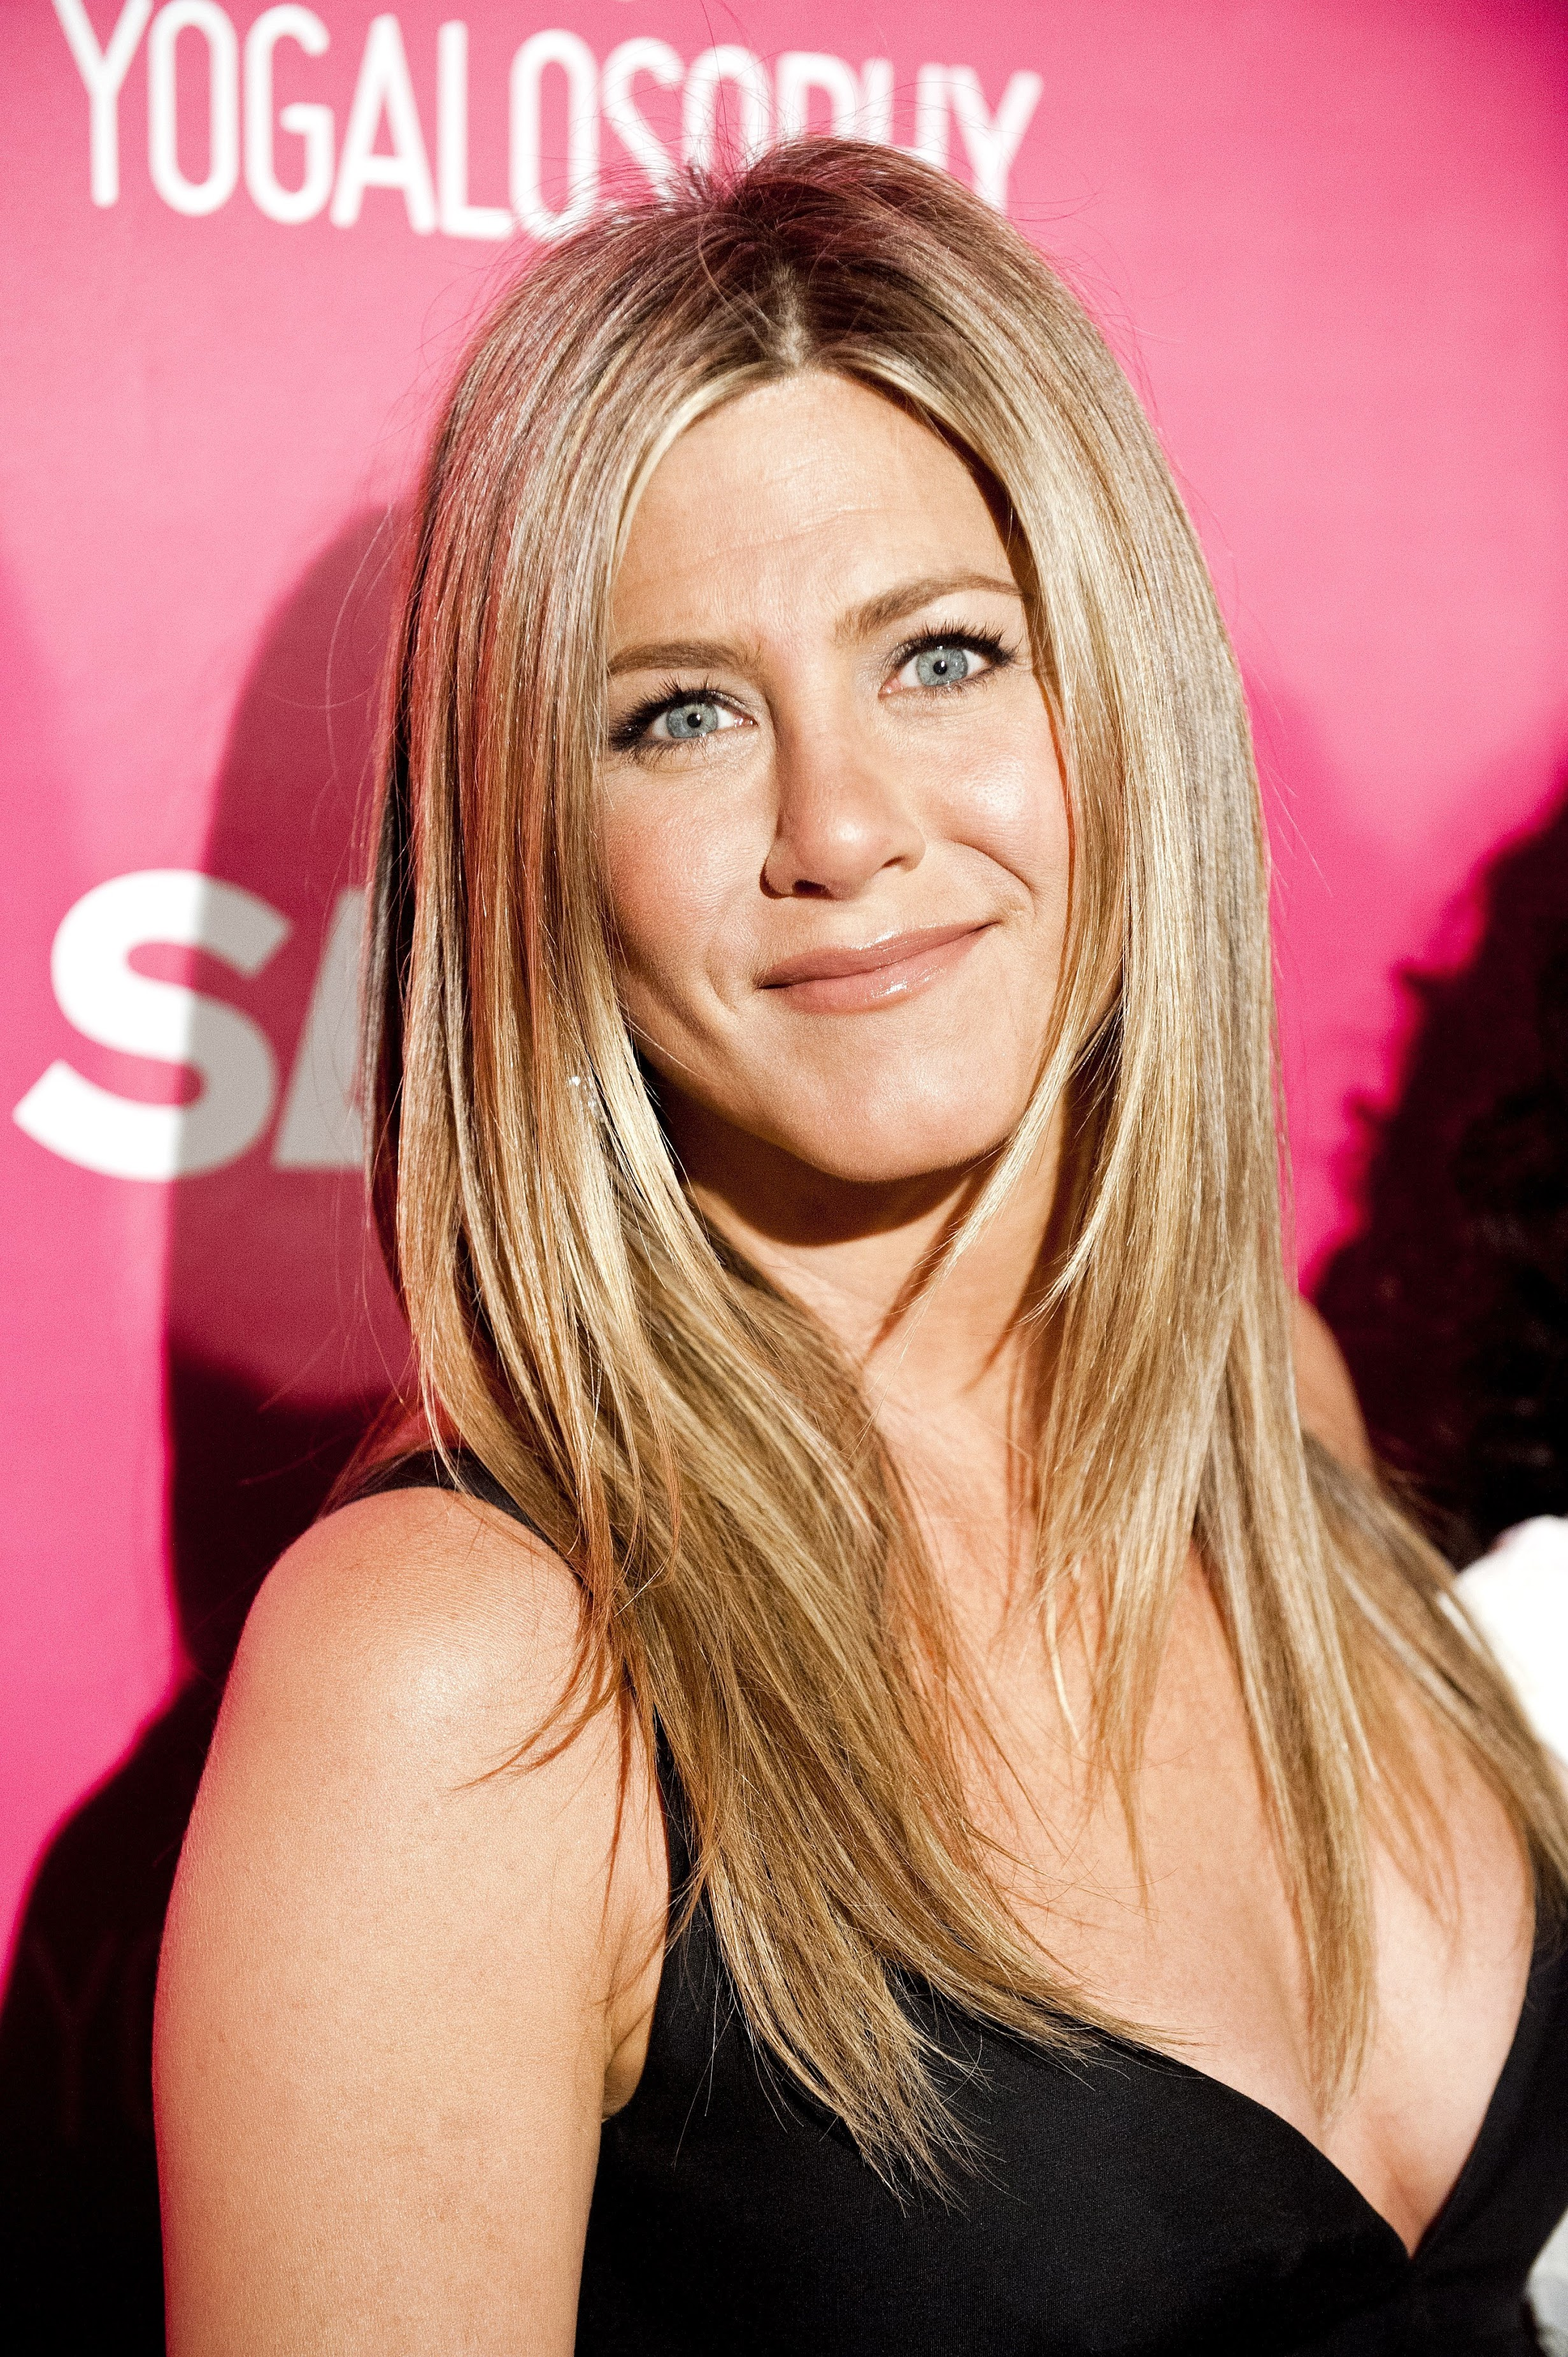 jennifer aniston pictures gallery 2 film actresses. Black Bedroom Furniture Sets. Home Design Ideas